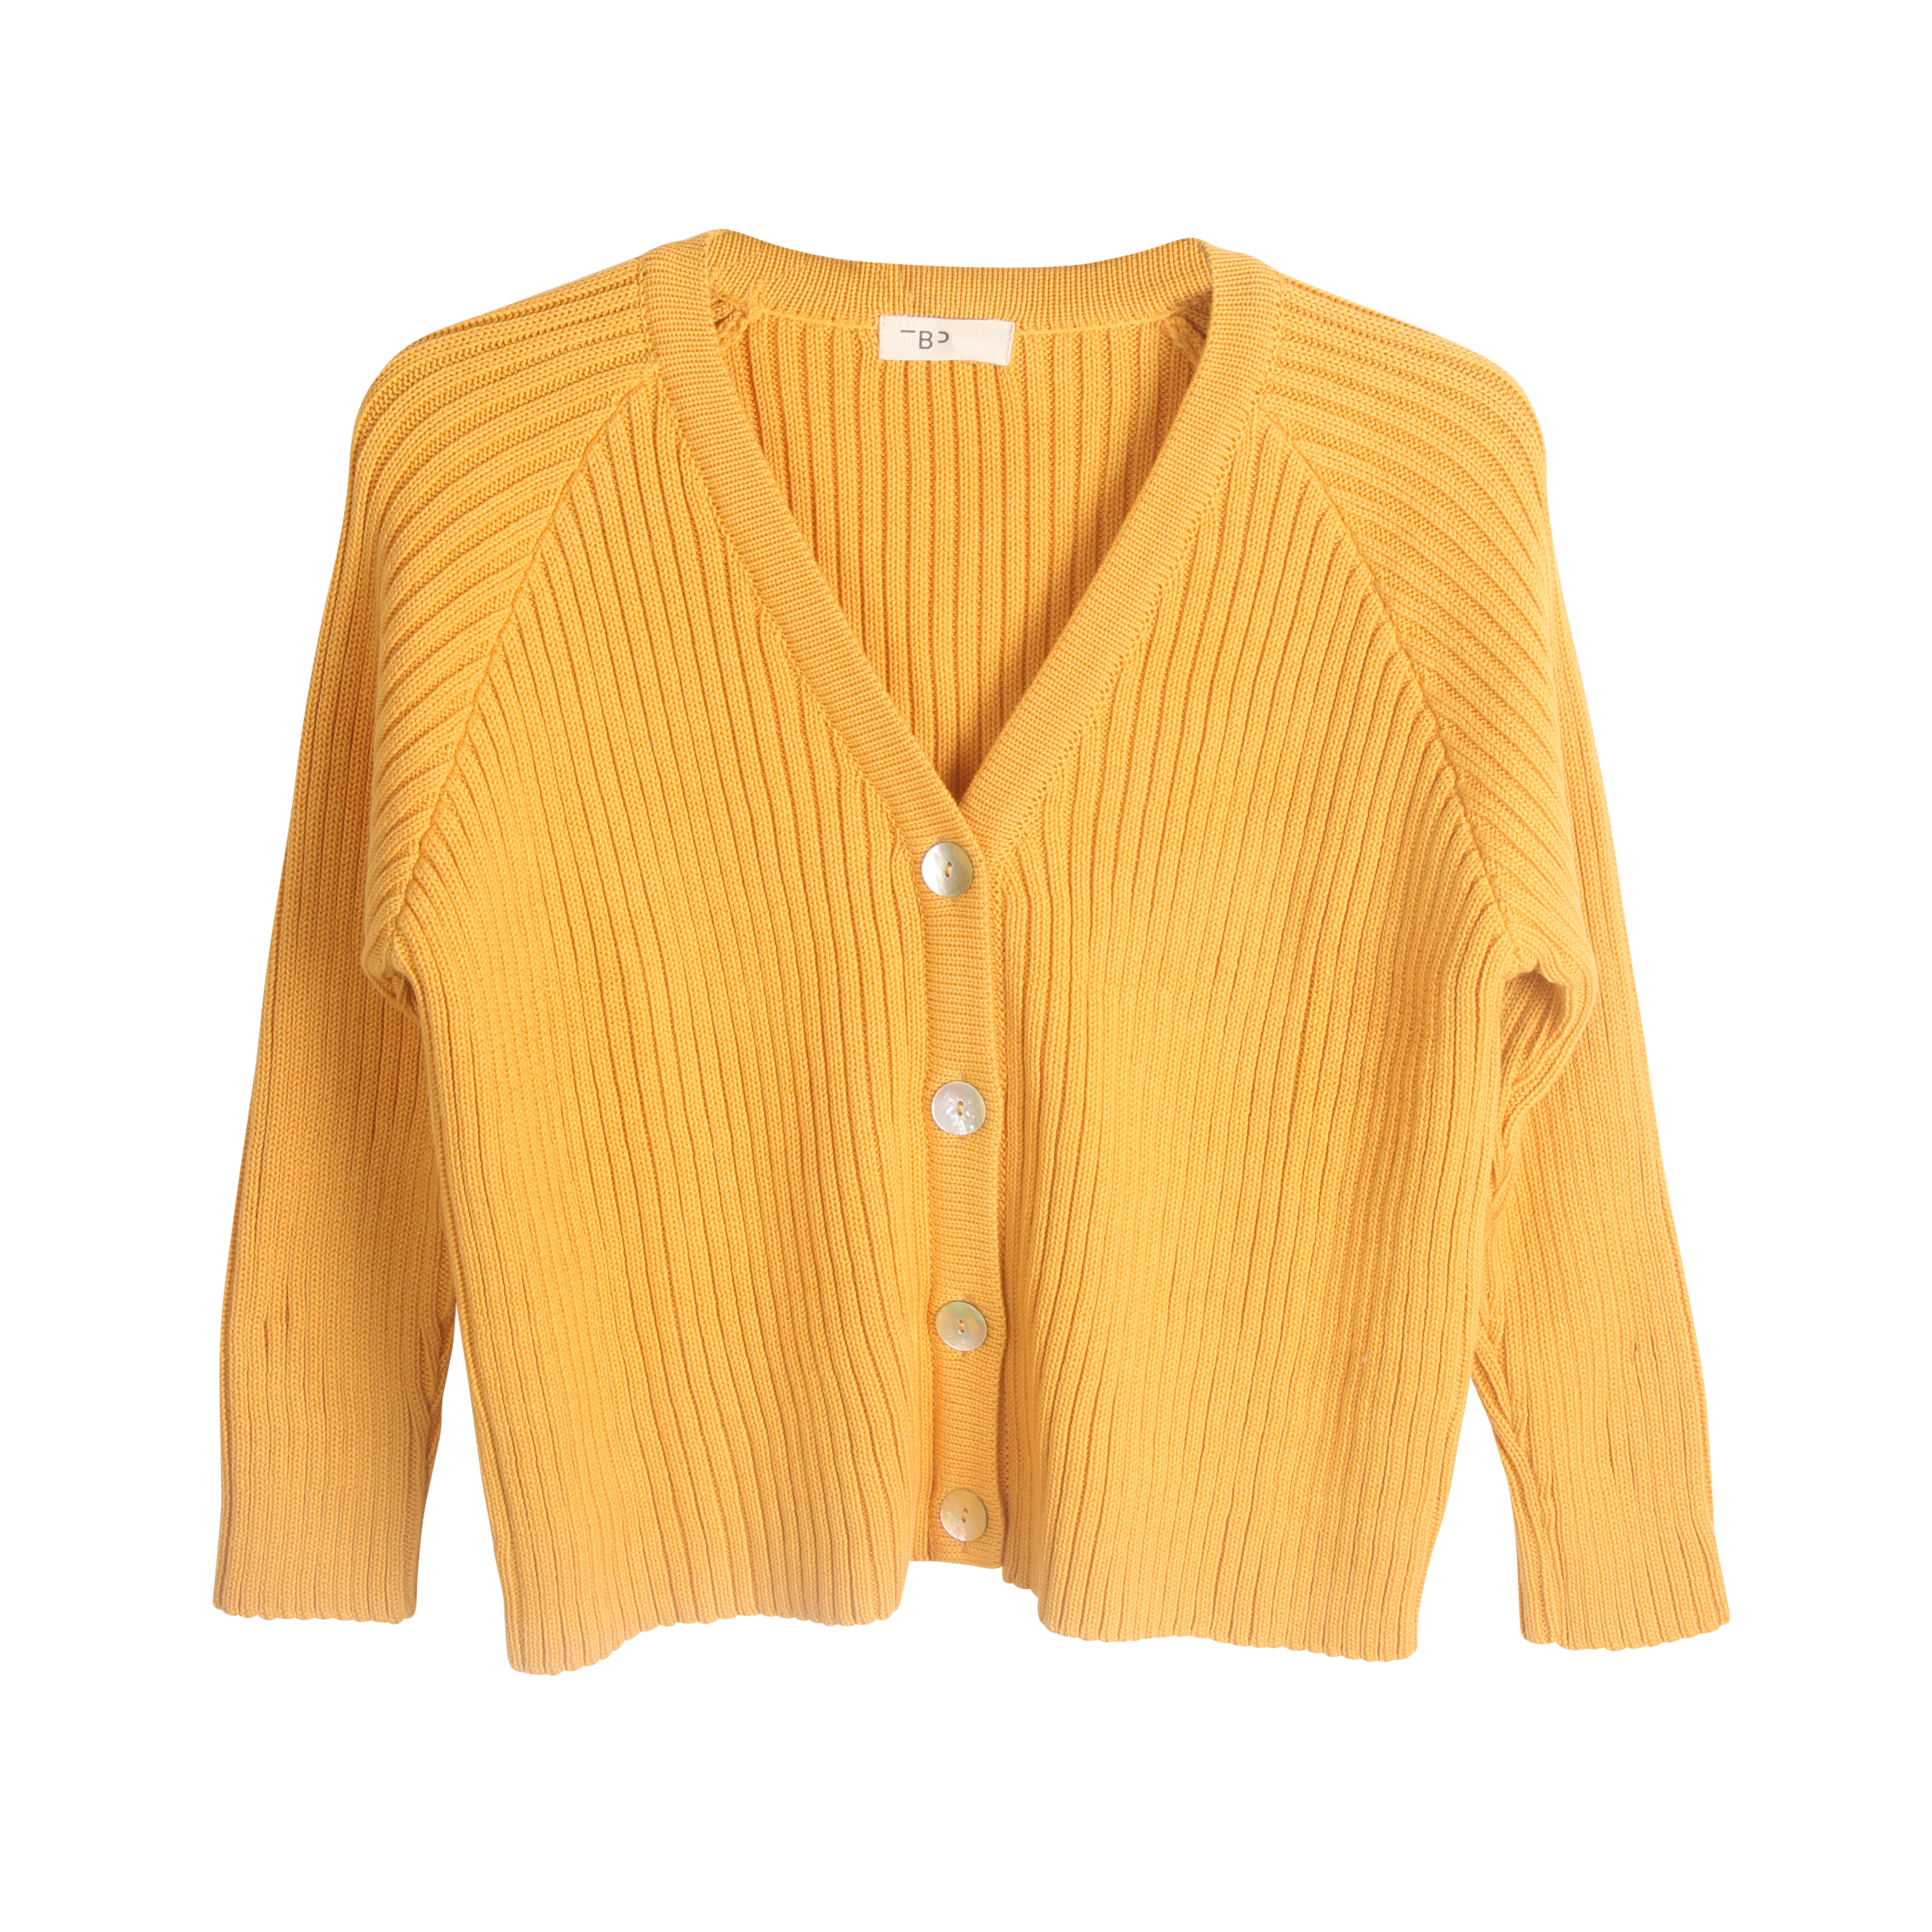 THE BIBIO PROJECT RIBBED CARDIGAN(BEESWAX)